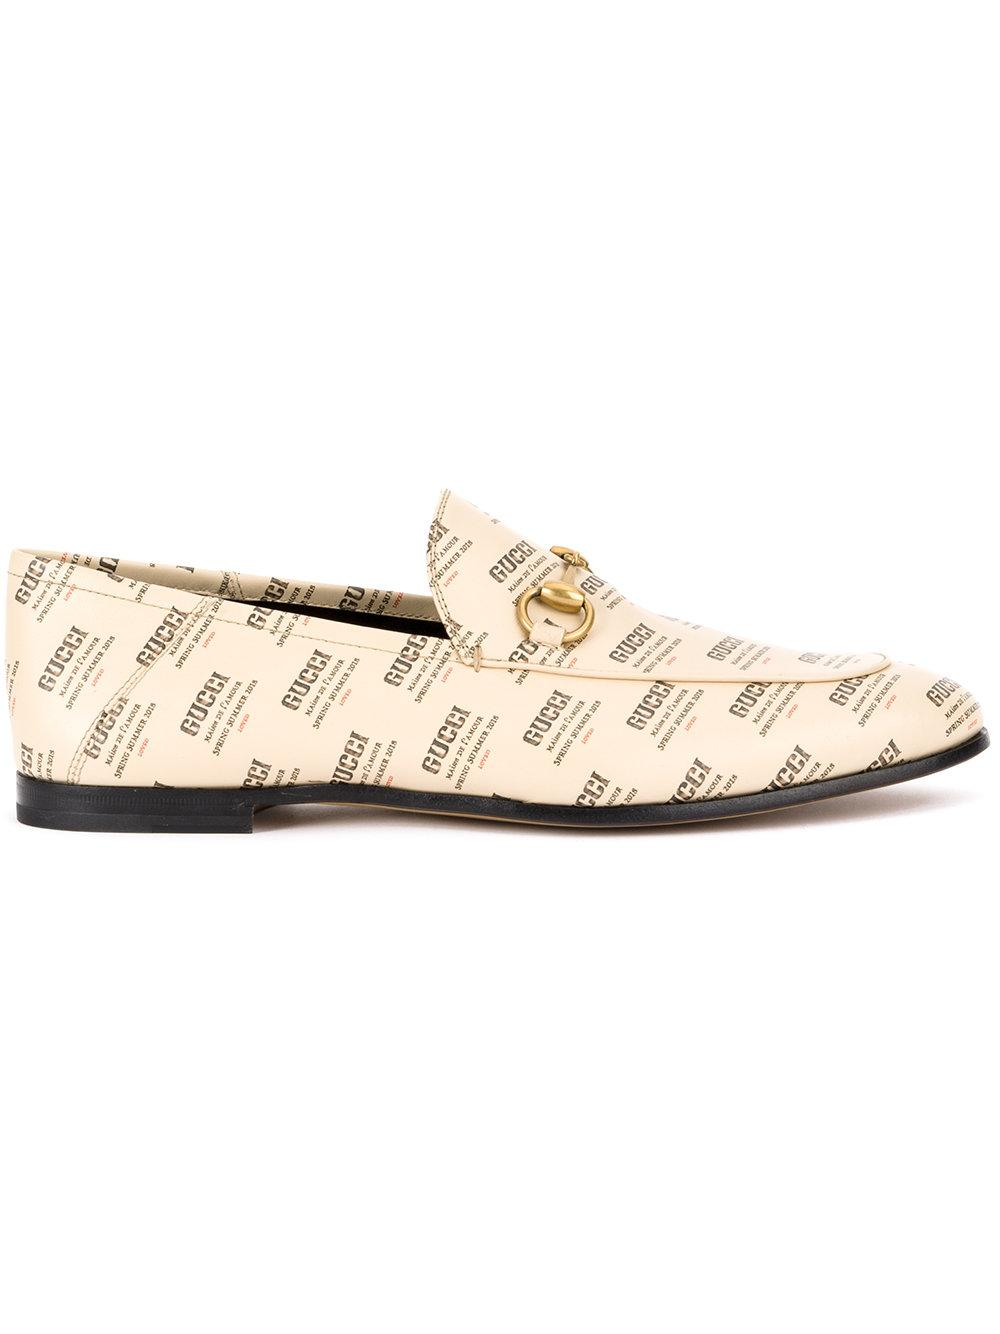 Gucci Gg Monogram Loafers